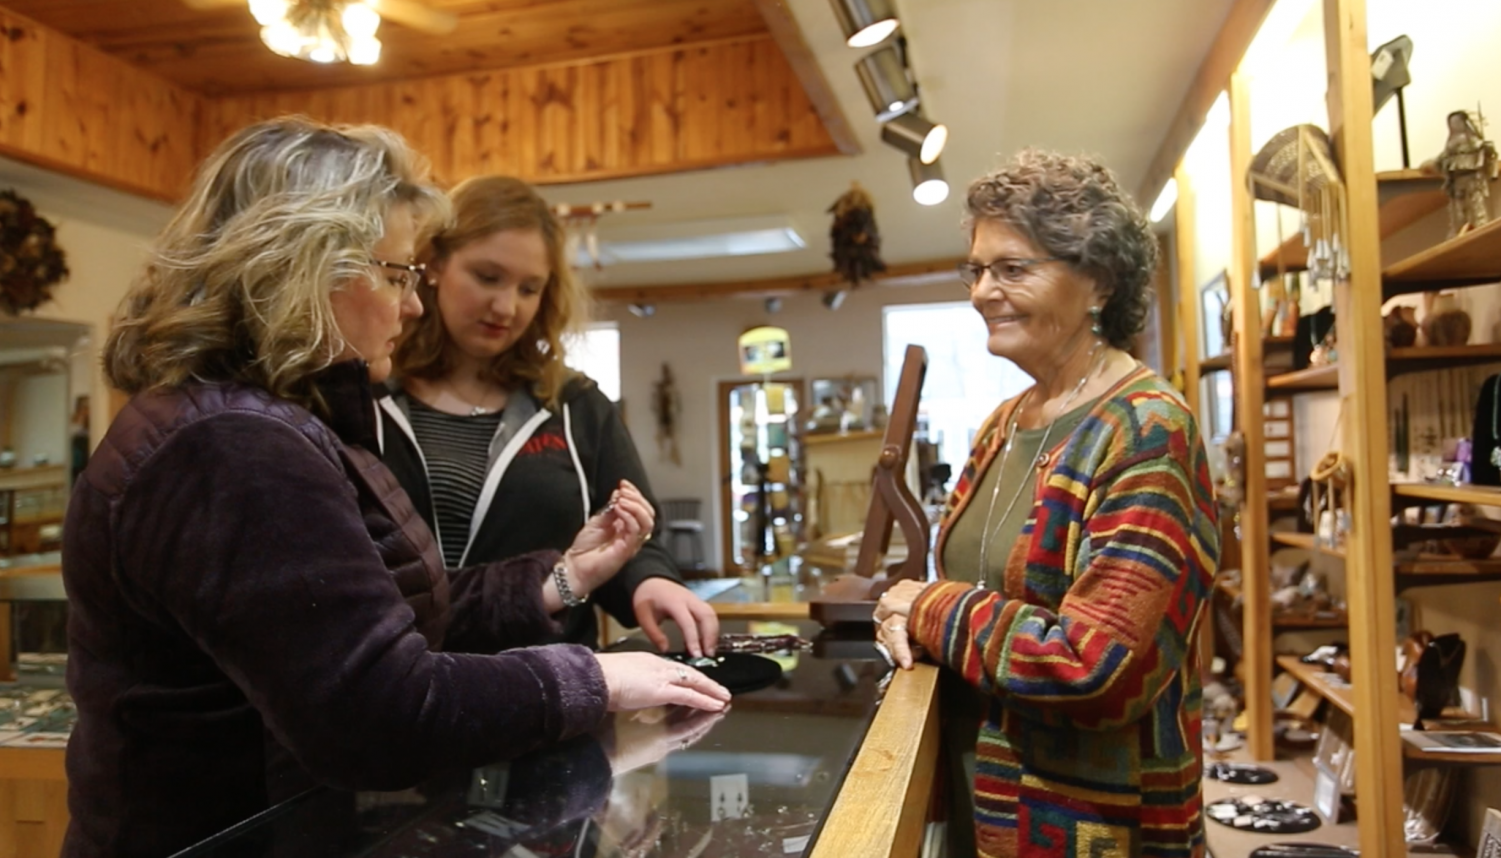 Jane Wolf guides her customers in choosing jewelry at the Silver Feather. © 2018 Xin Tao